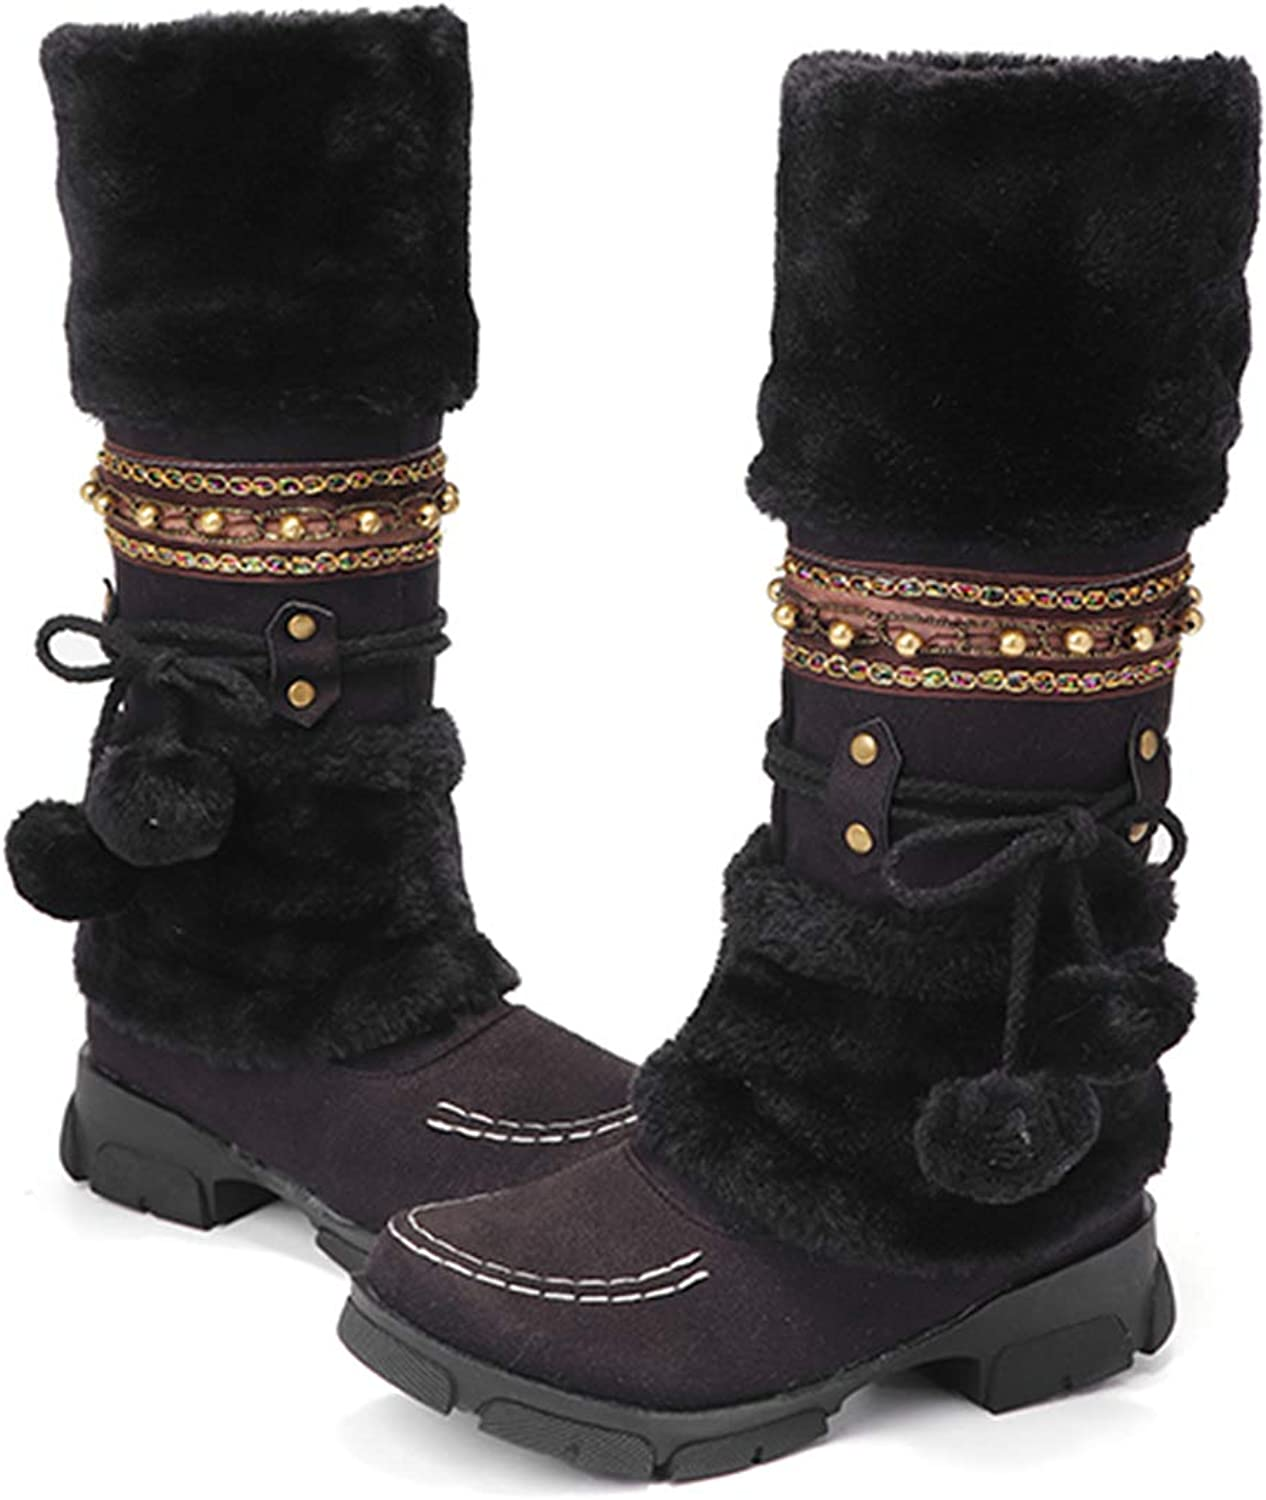 Camfosy Winter Boots Warm Fur Lined Mid Calf Snow Boots Outdoor Slip on Pom Pom Riding Boots for Women